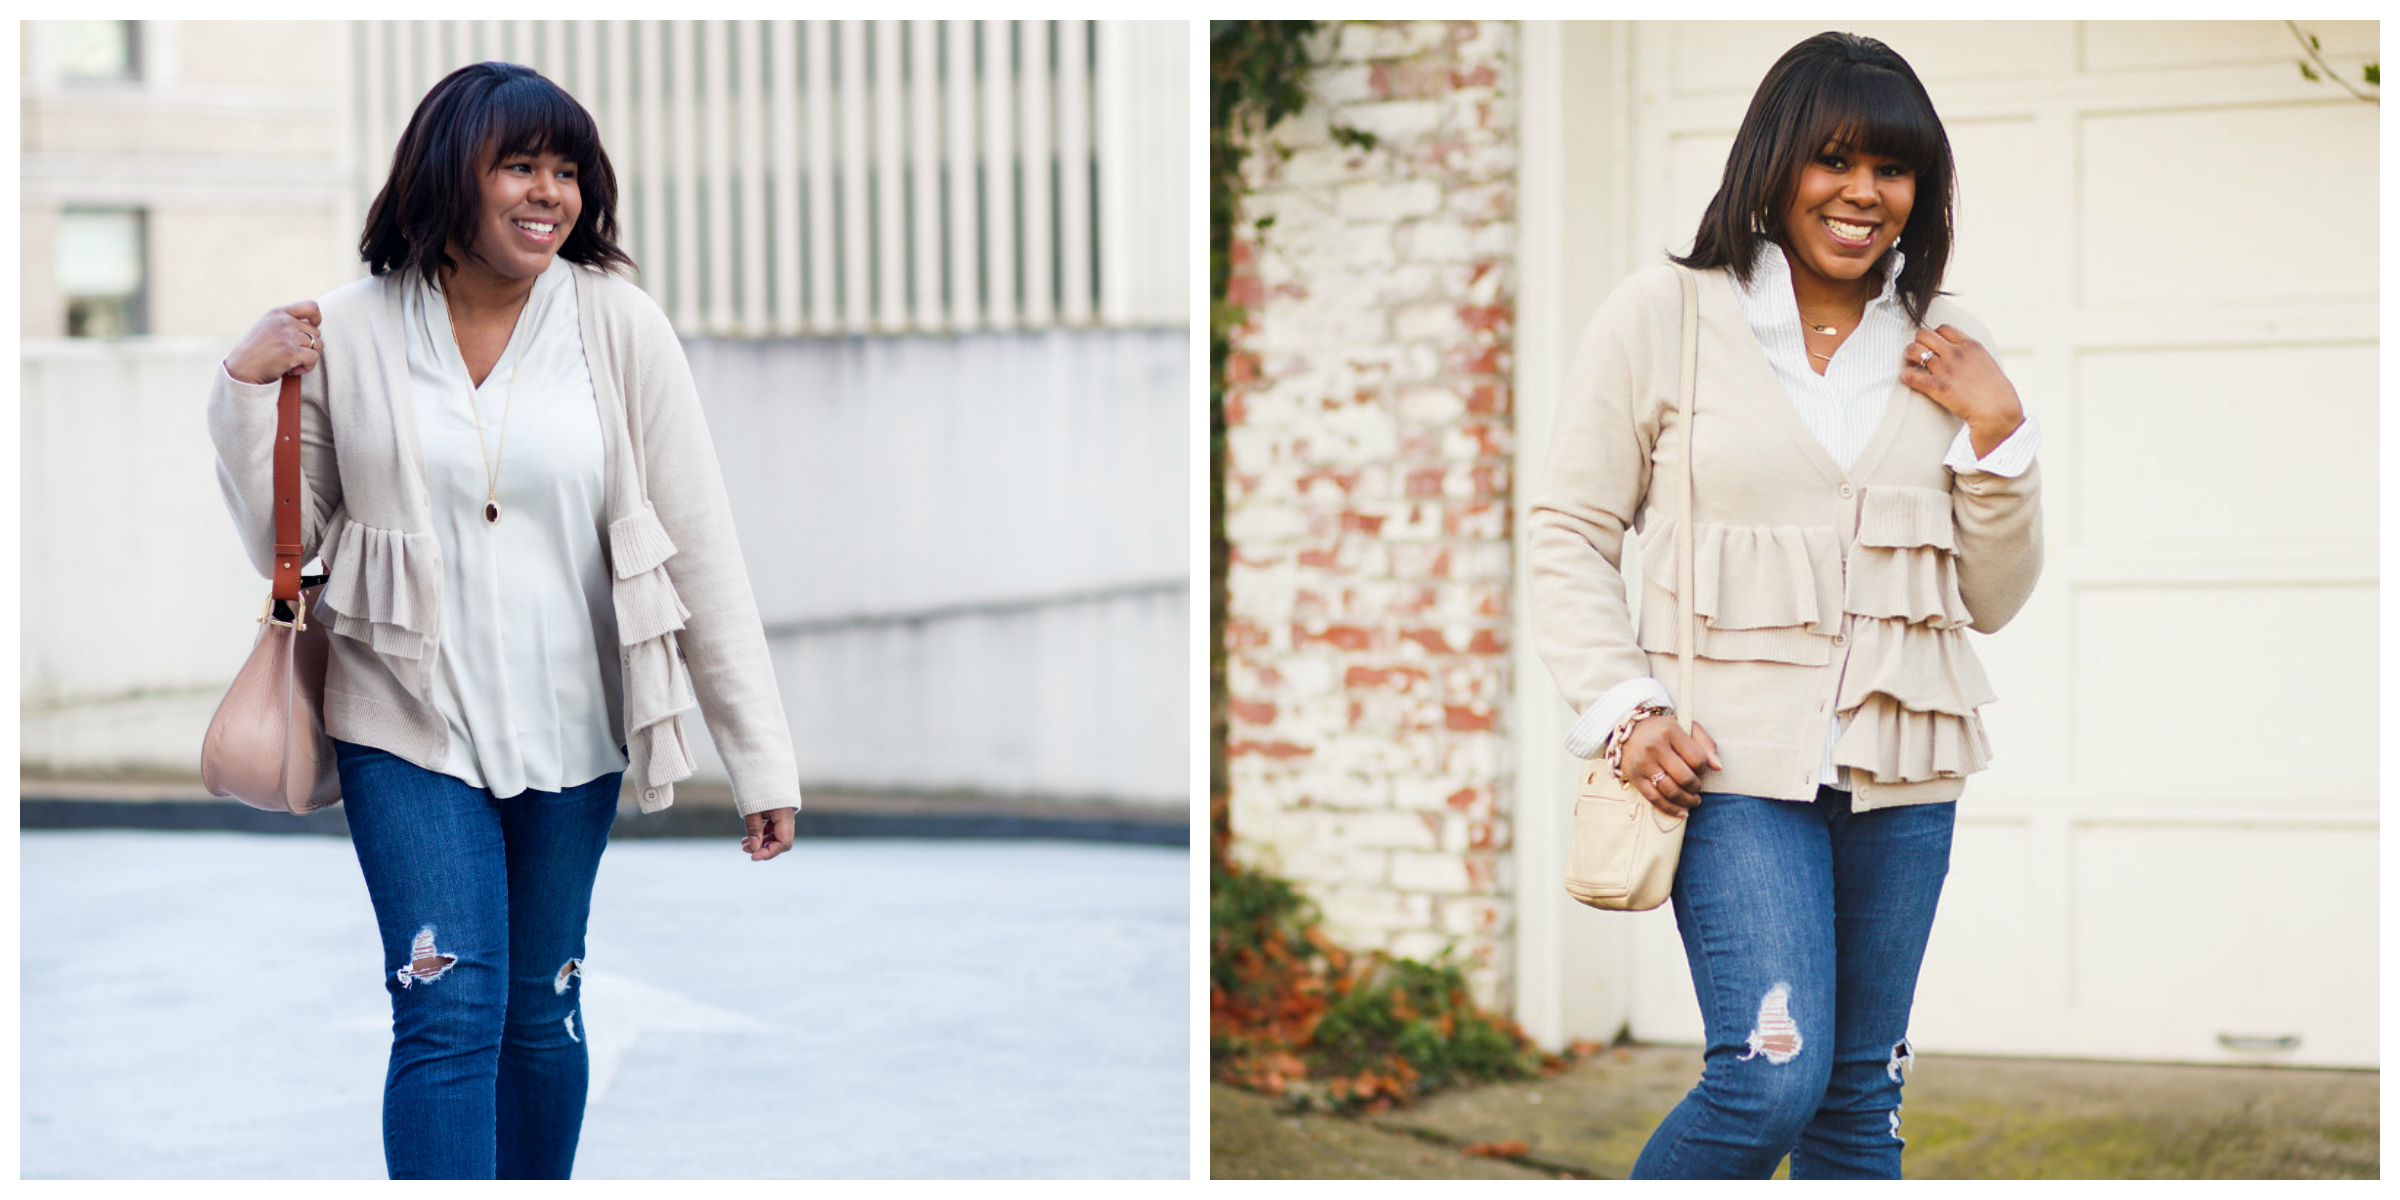 Ruffle sweater worn with distressed jeans.